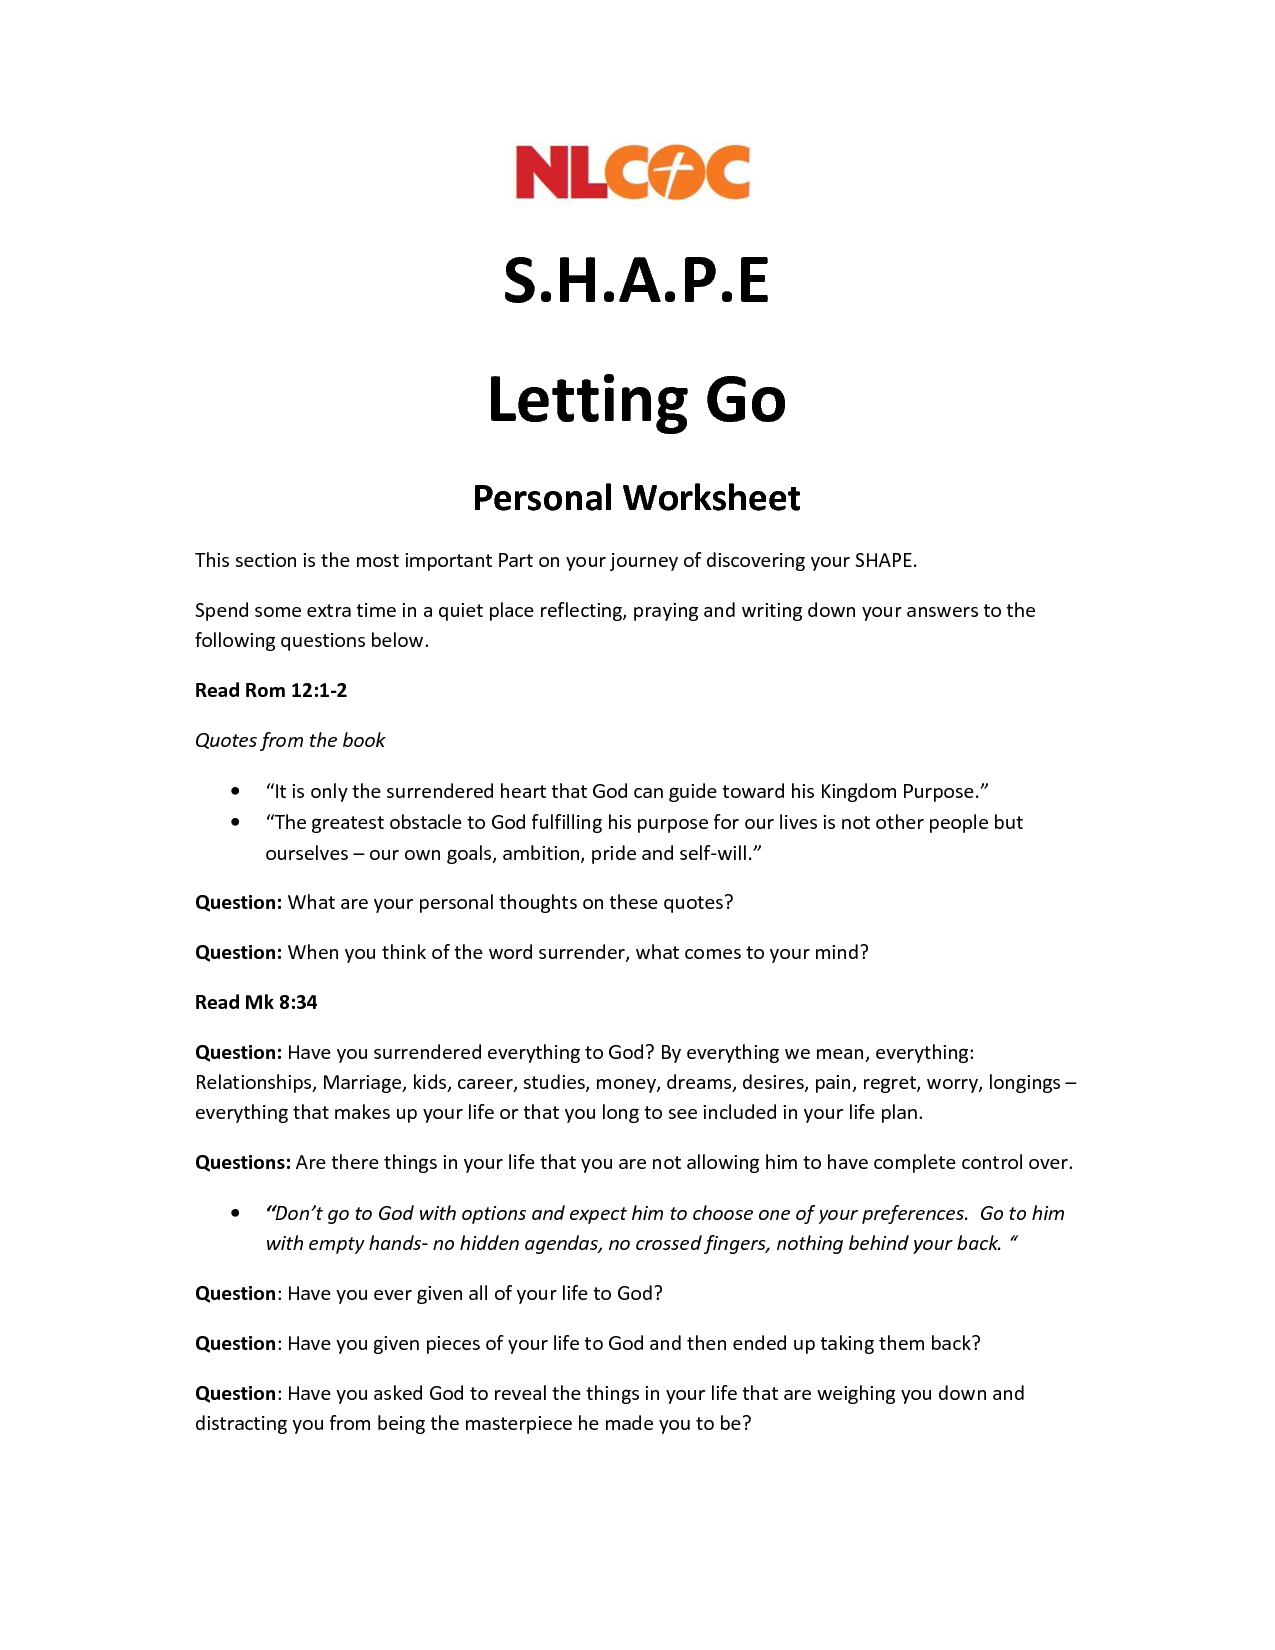 Worksheet Milliken Publishing Company Worksheet Answers collection the water cycle milliken publishing company worksheet images of letting go worksheets for kids images